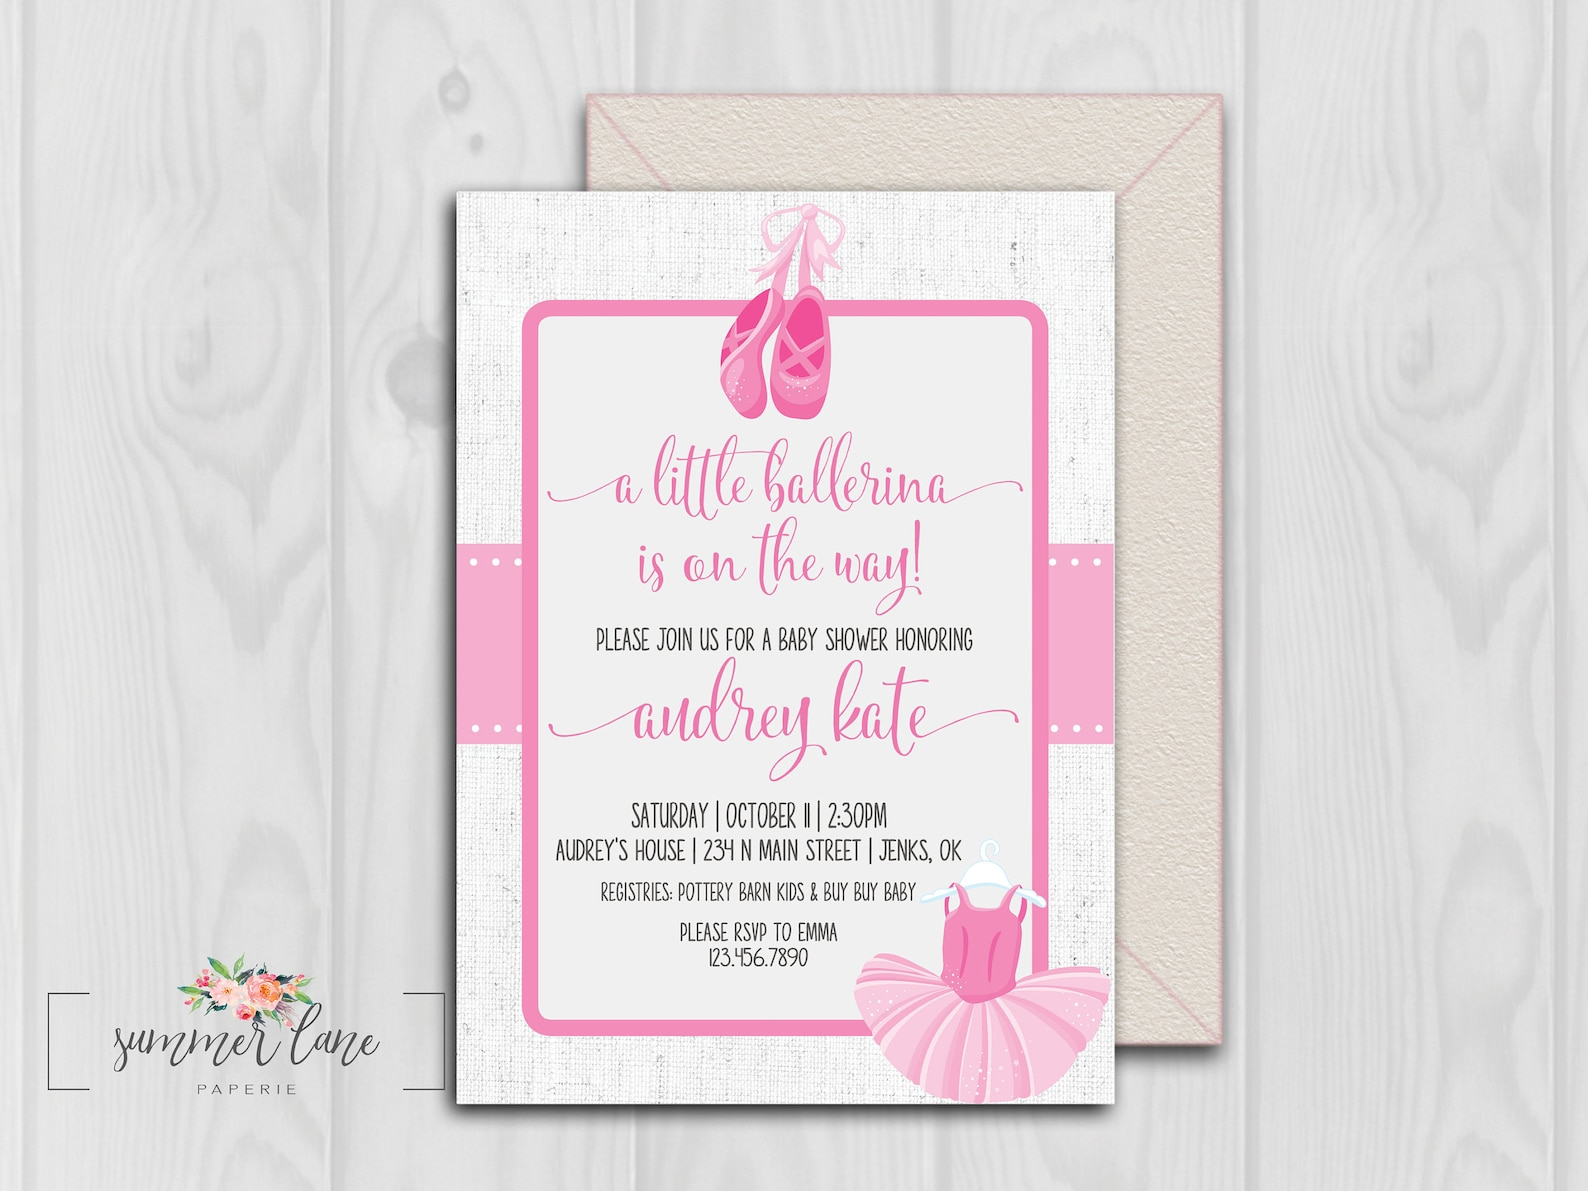 little ballerina baby shower invitations | pink tutu and ballet shoes girl baby shower | classy light pink ballet shower printab